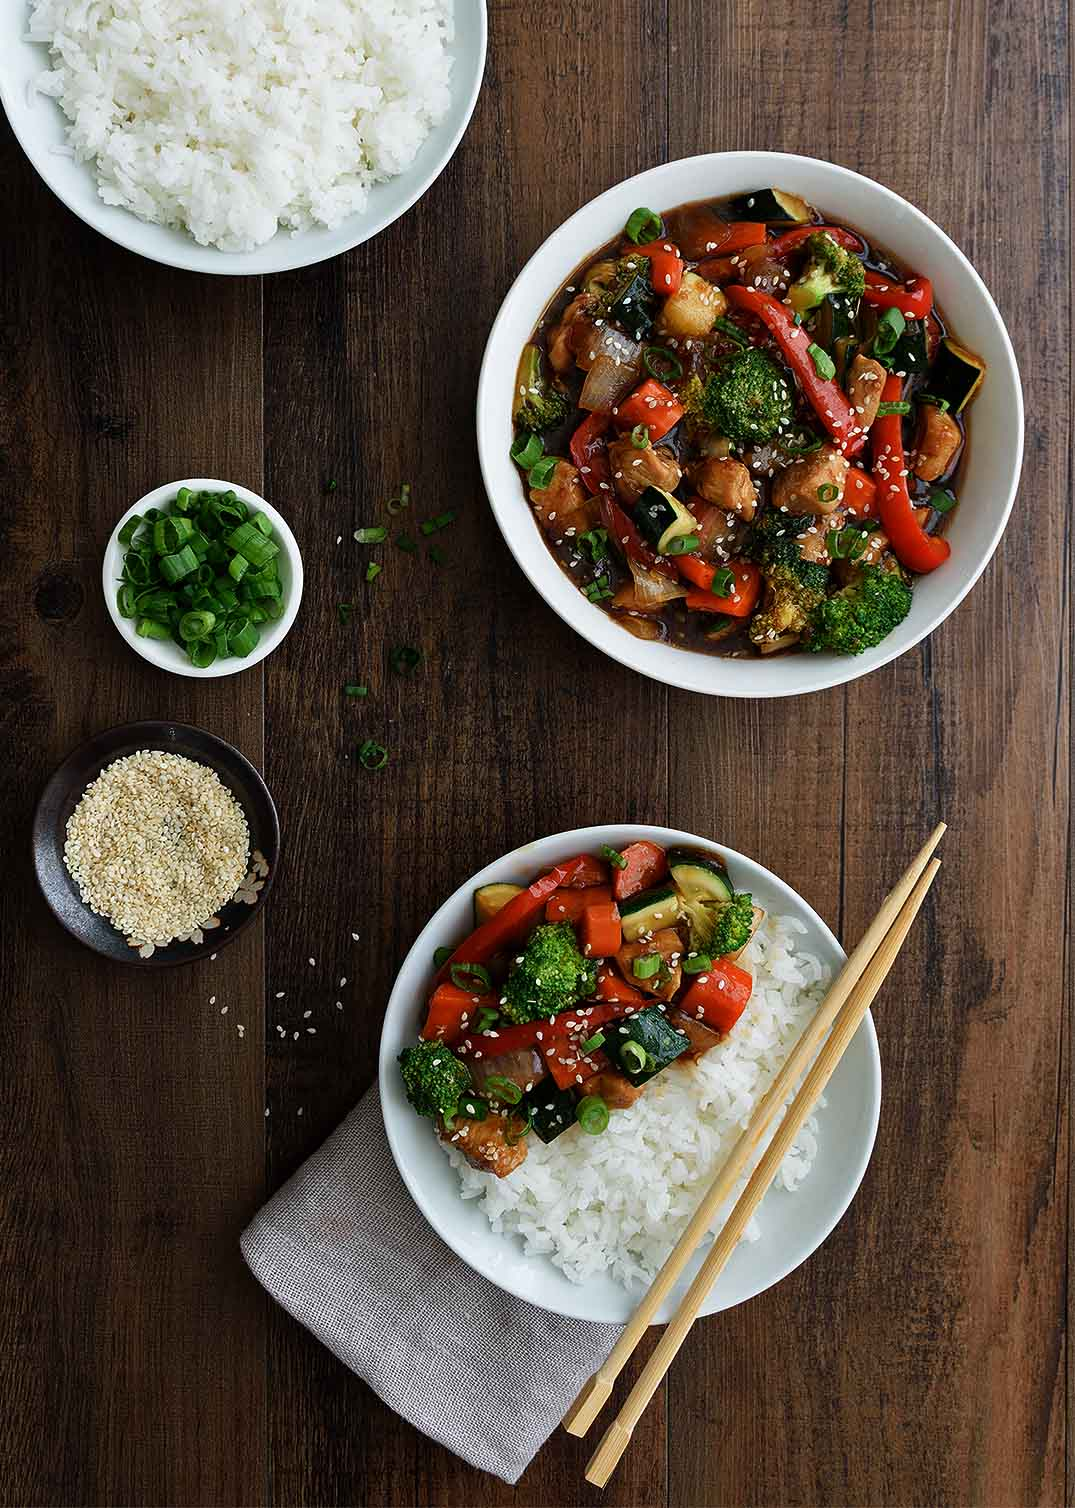 Teriyaki Chicken and Veggies - Pepper Delight #pepperdelightblog #recipe #teriyaki #teriyakichicken #teriyakisauce #japanese #asian #mealprep #healthy #30minutesrecipes #homemadeteriyakisauce #dinner #lunch #sidedish #party #weeknightmeal #comfortmeal